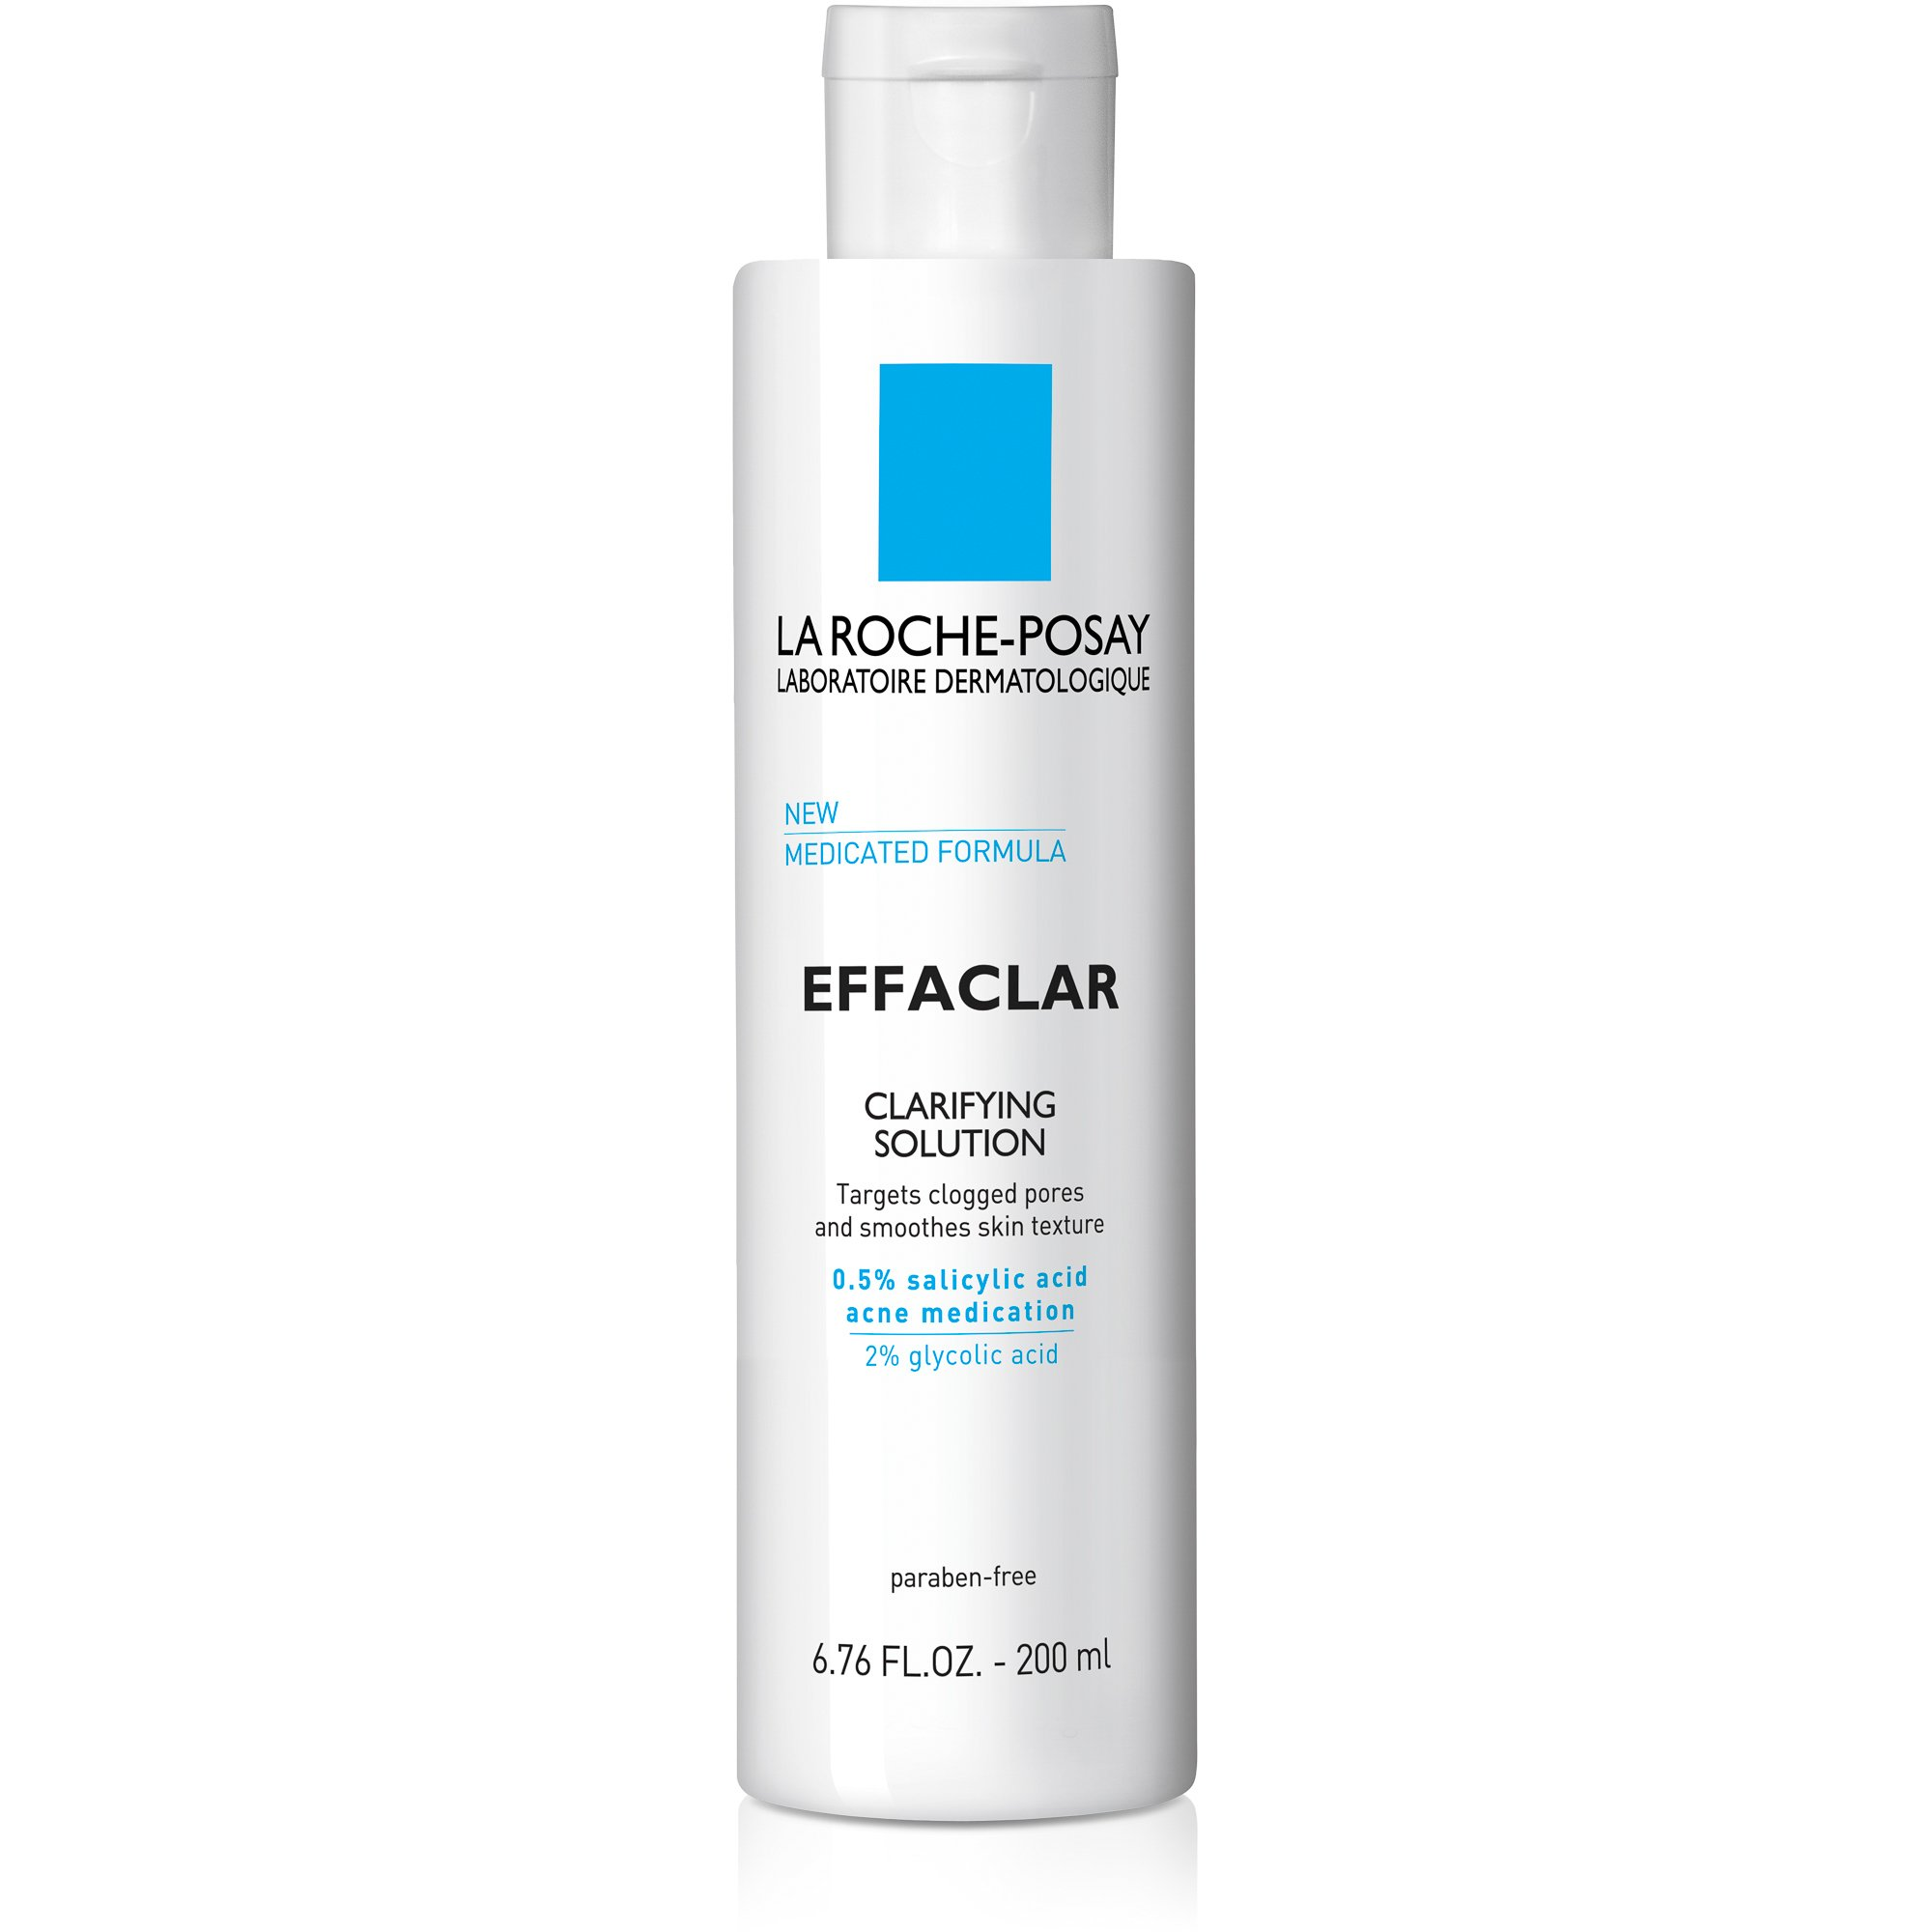 La Roche-Posay Effaclar Clarifying Solution Acne Toner with Salicylic Acid, 6.76 Fl Oz